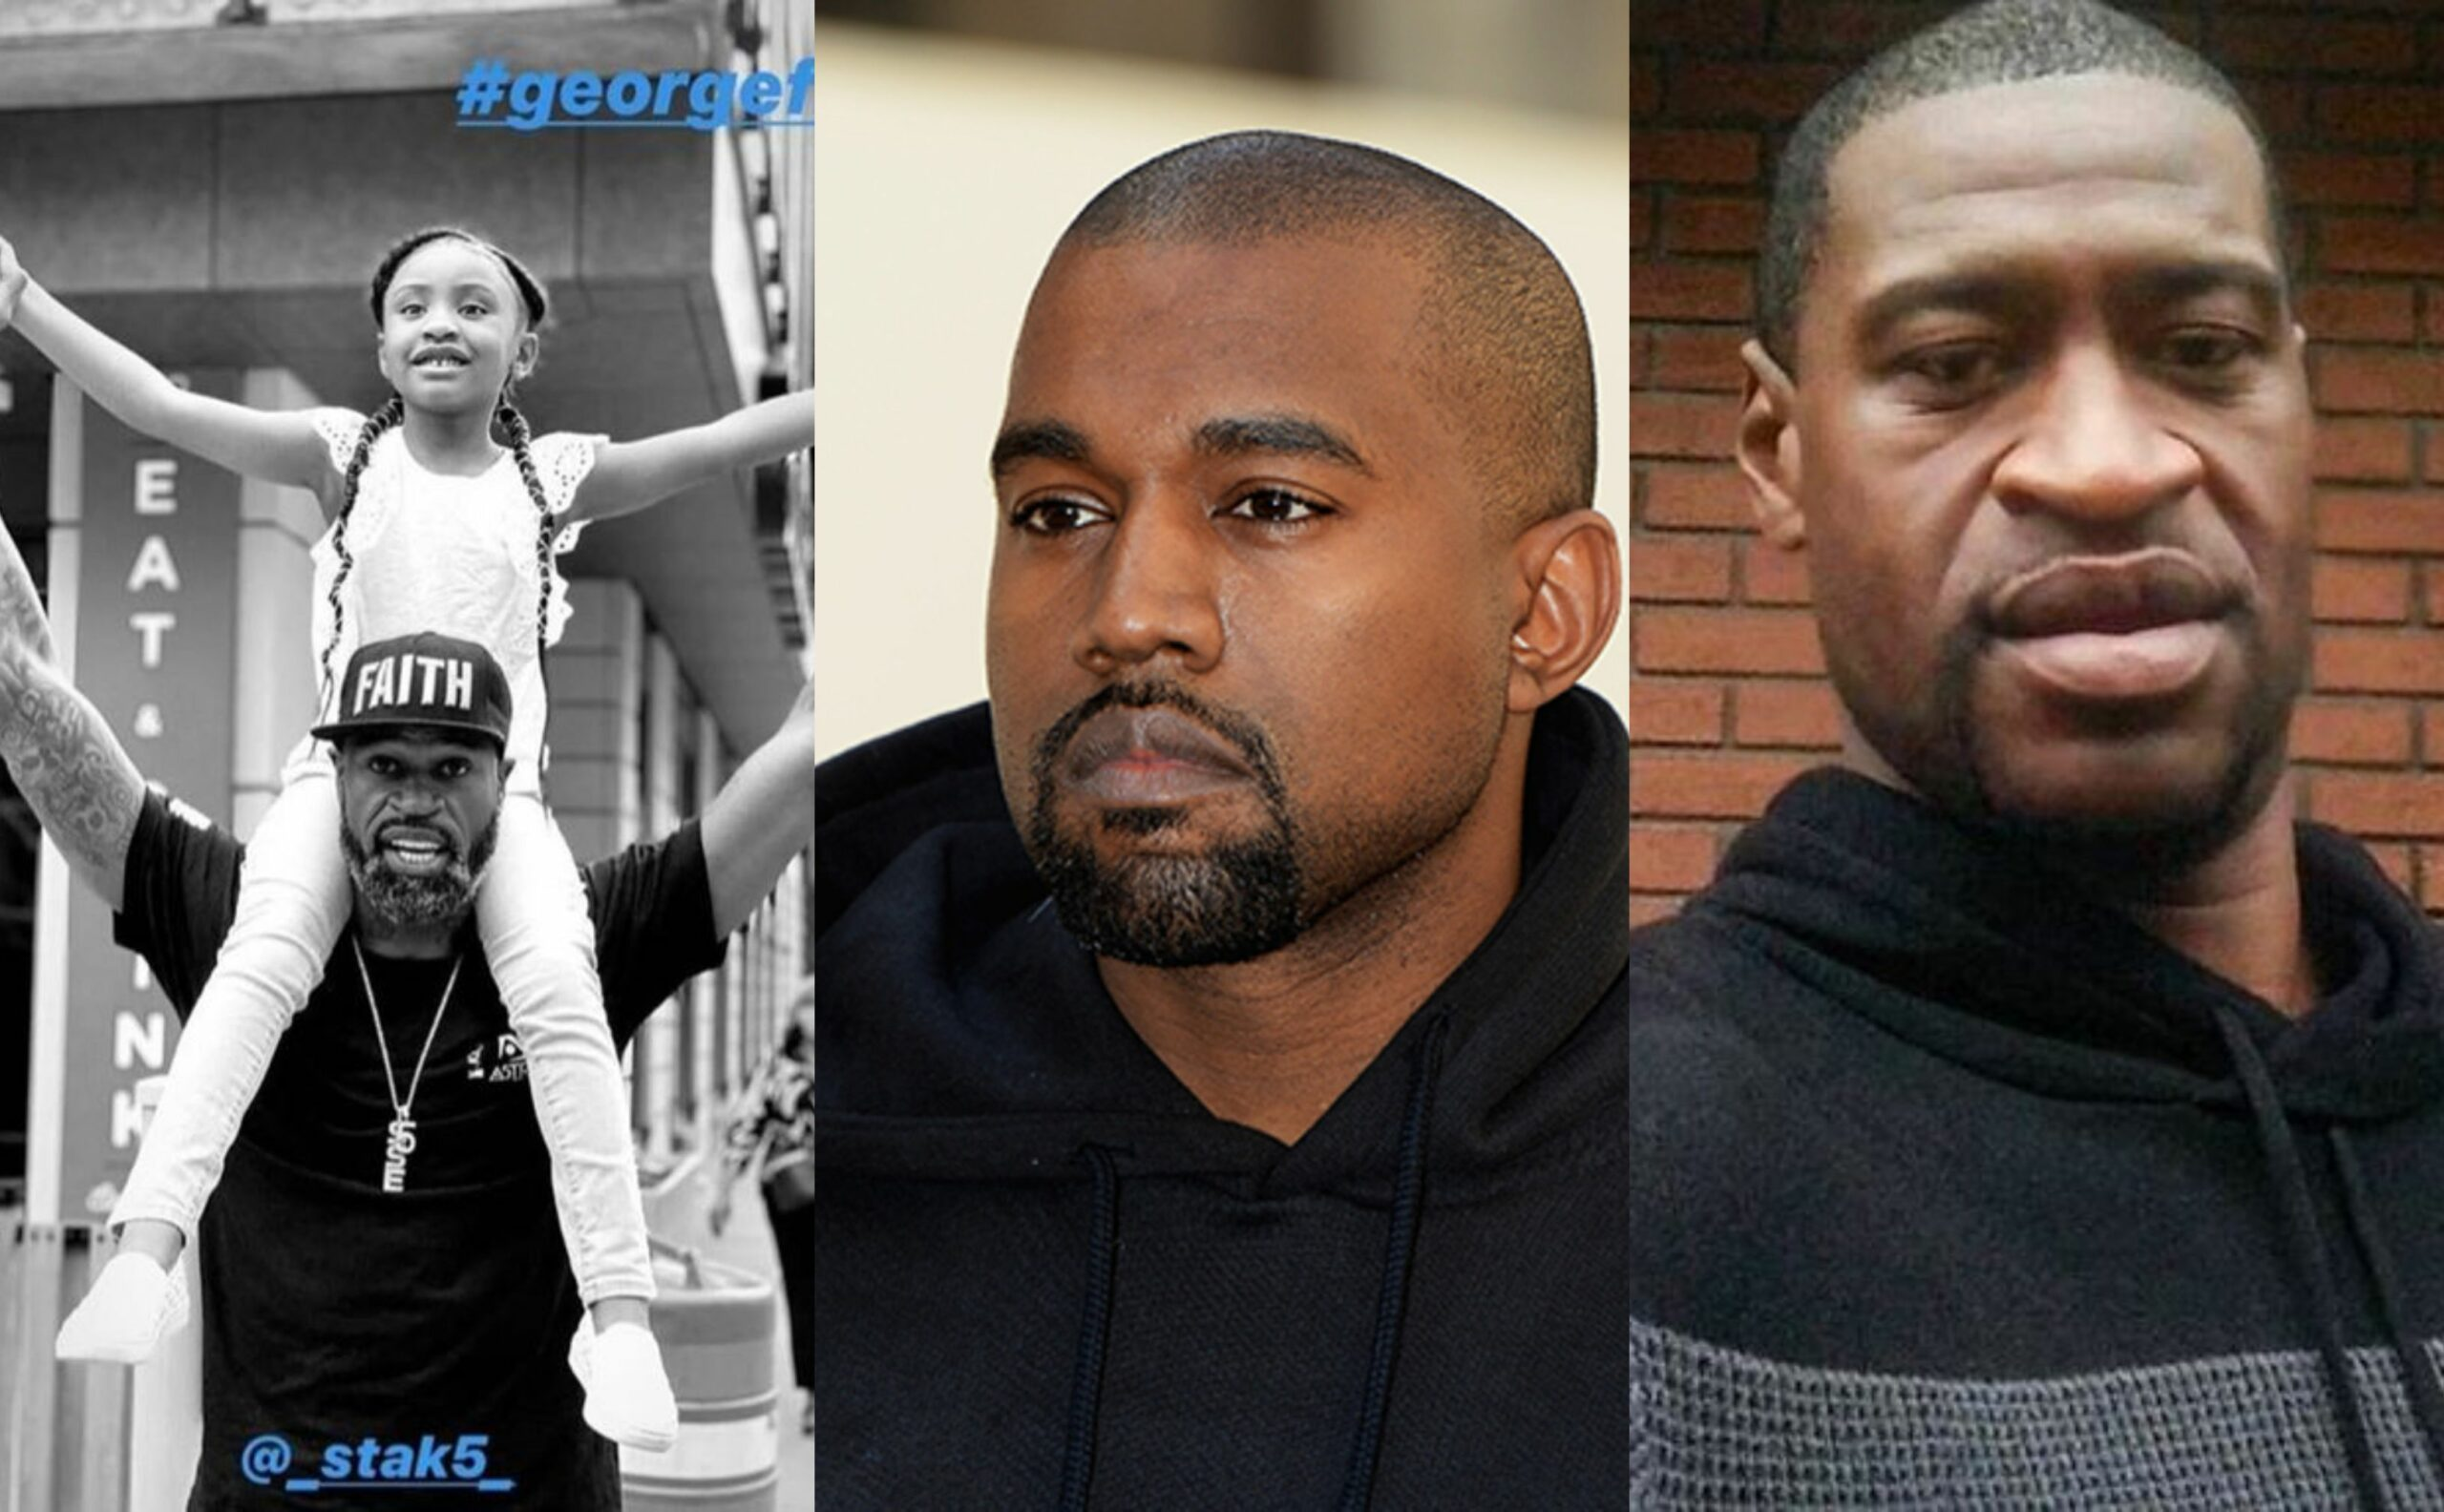 Kanye West donates $2million, sets up education trust fund for George Floyd's 6-year-old daughter